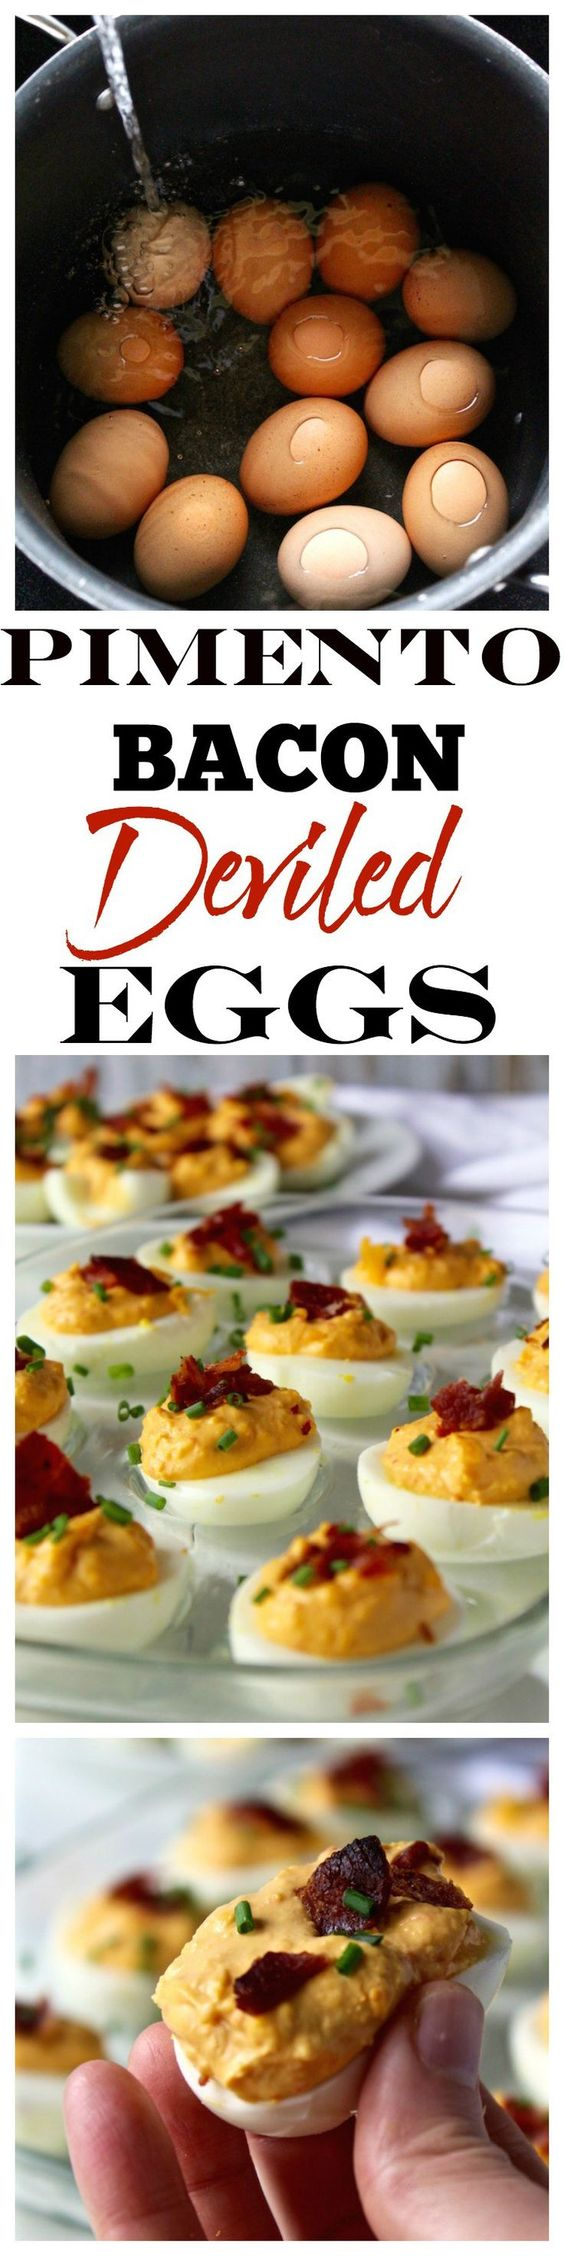 Pimento Bacon Deviled Eggs | Bessie Bakes